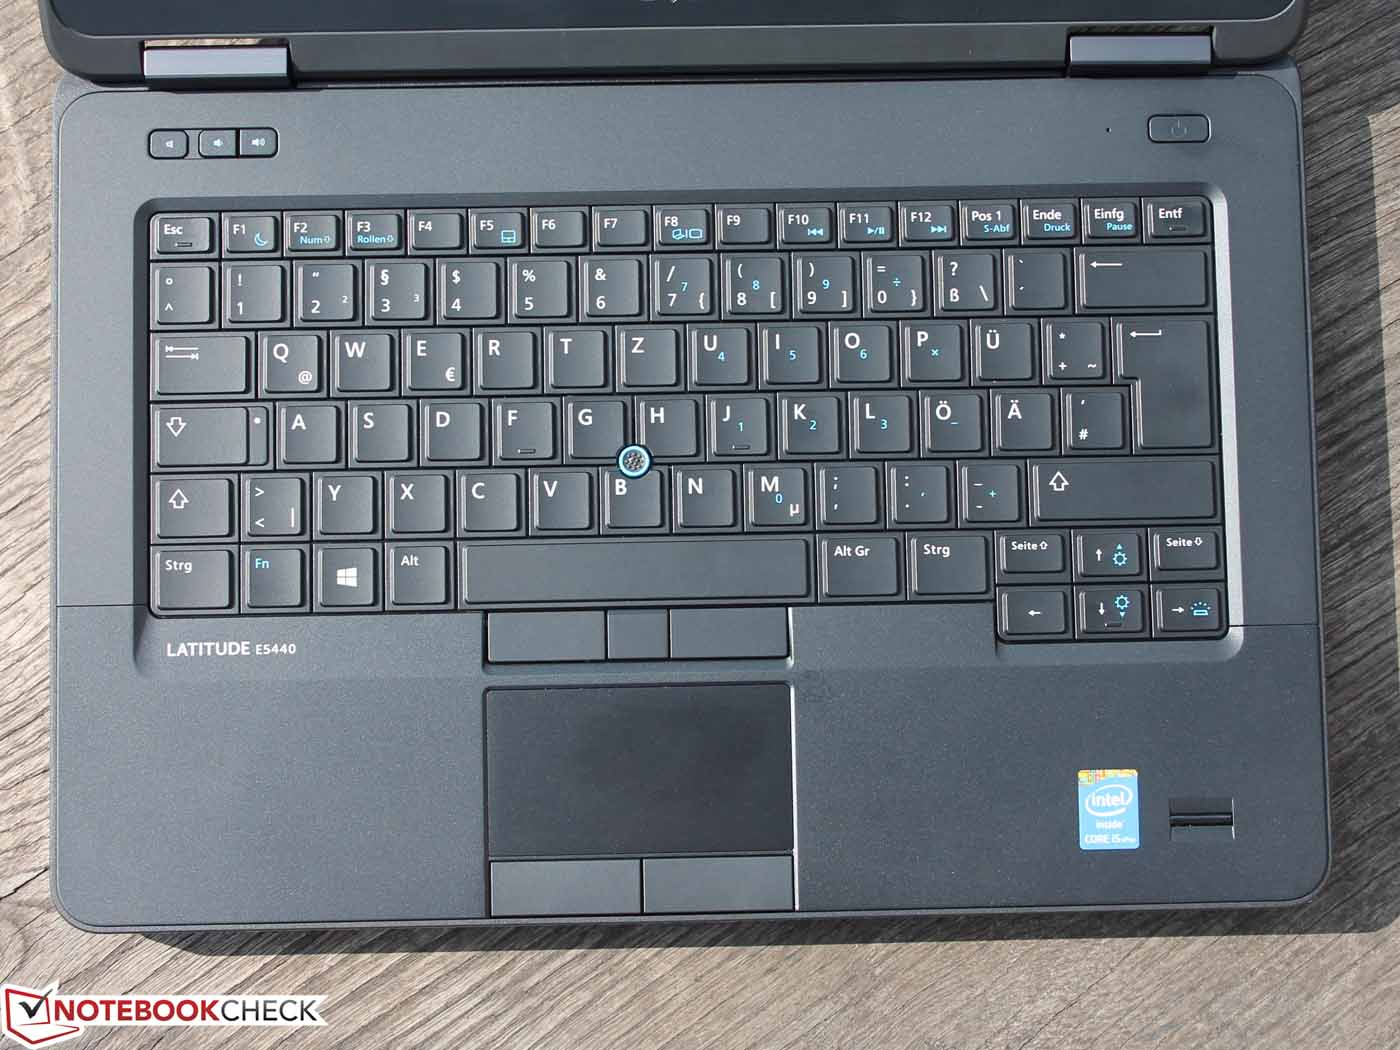 Dell latitude e5440 drivers for windows 7 32/64bit ~ free drivers.